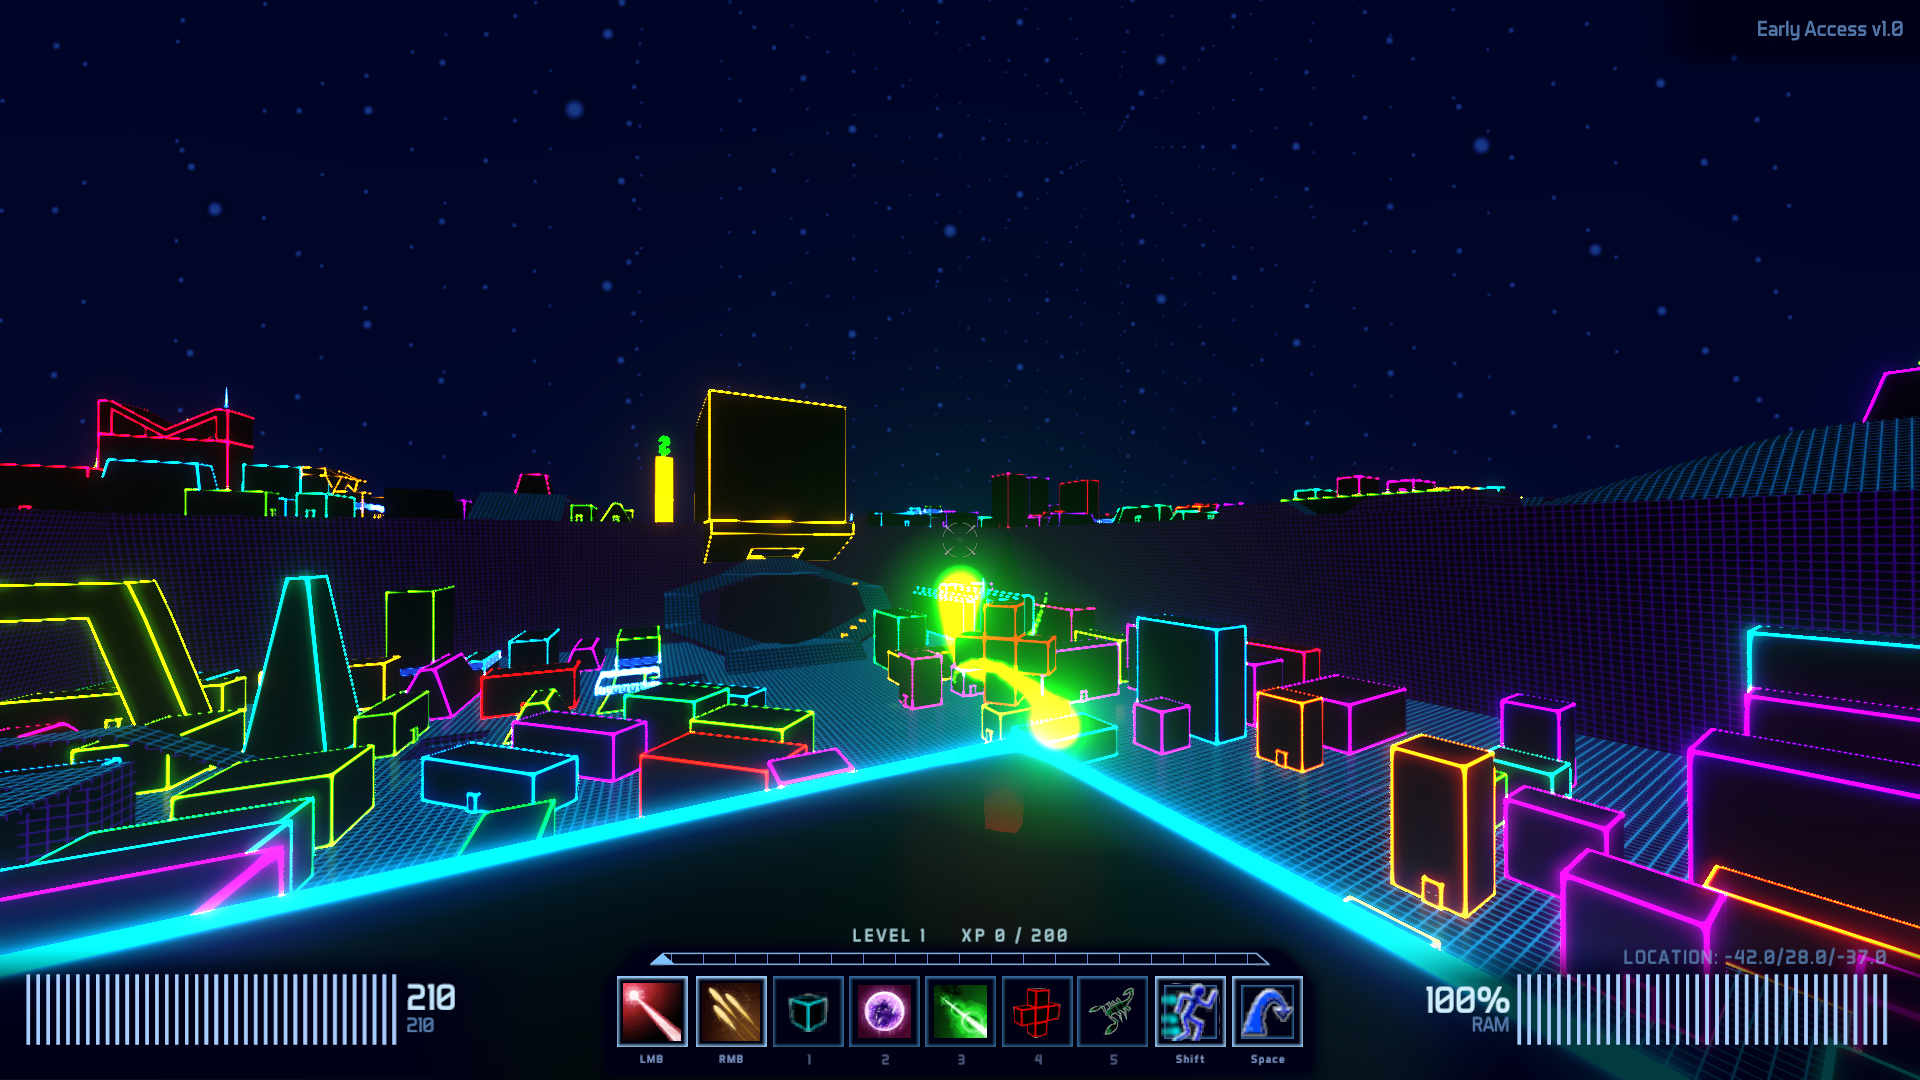 first-person viewpoint of the neon shape-filled overworld